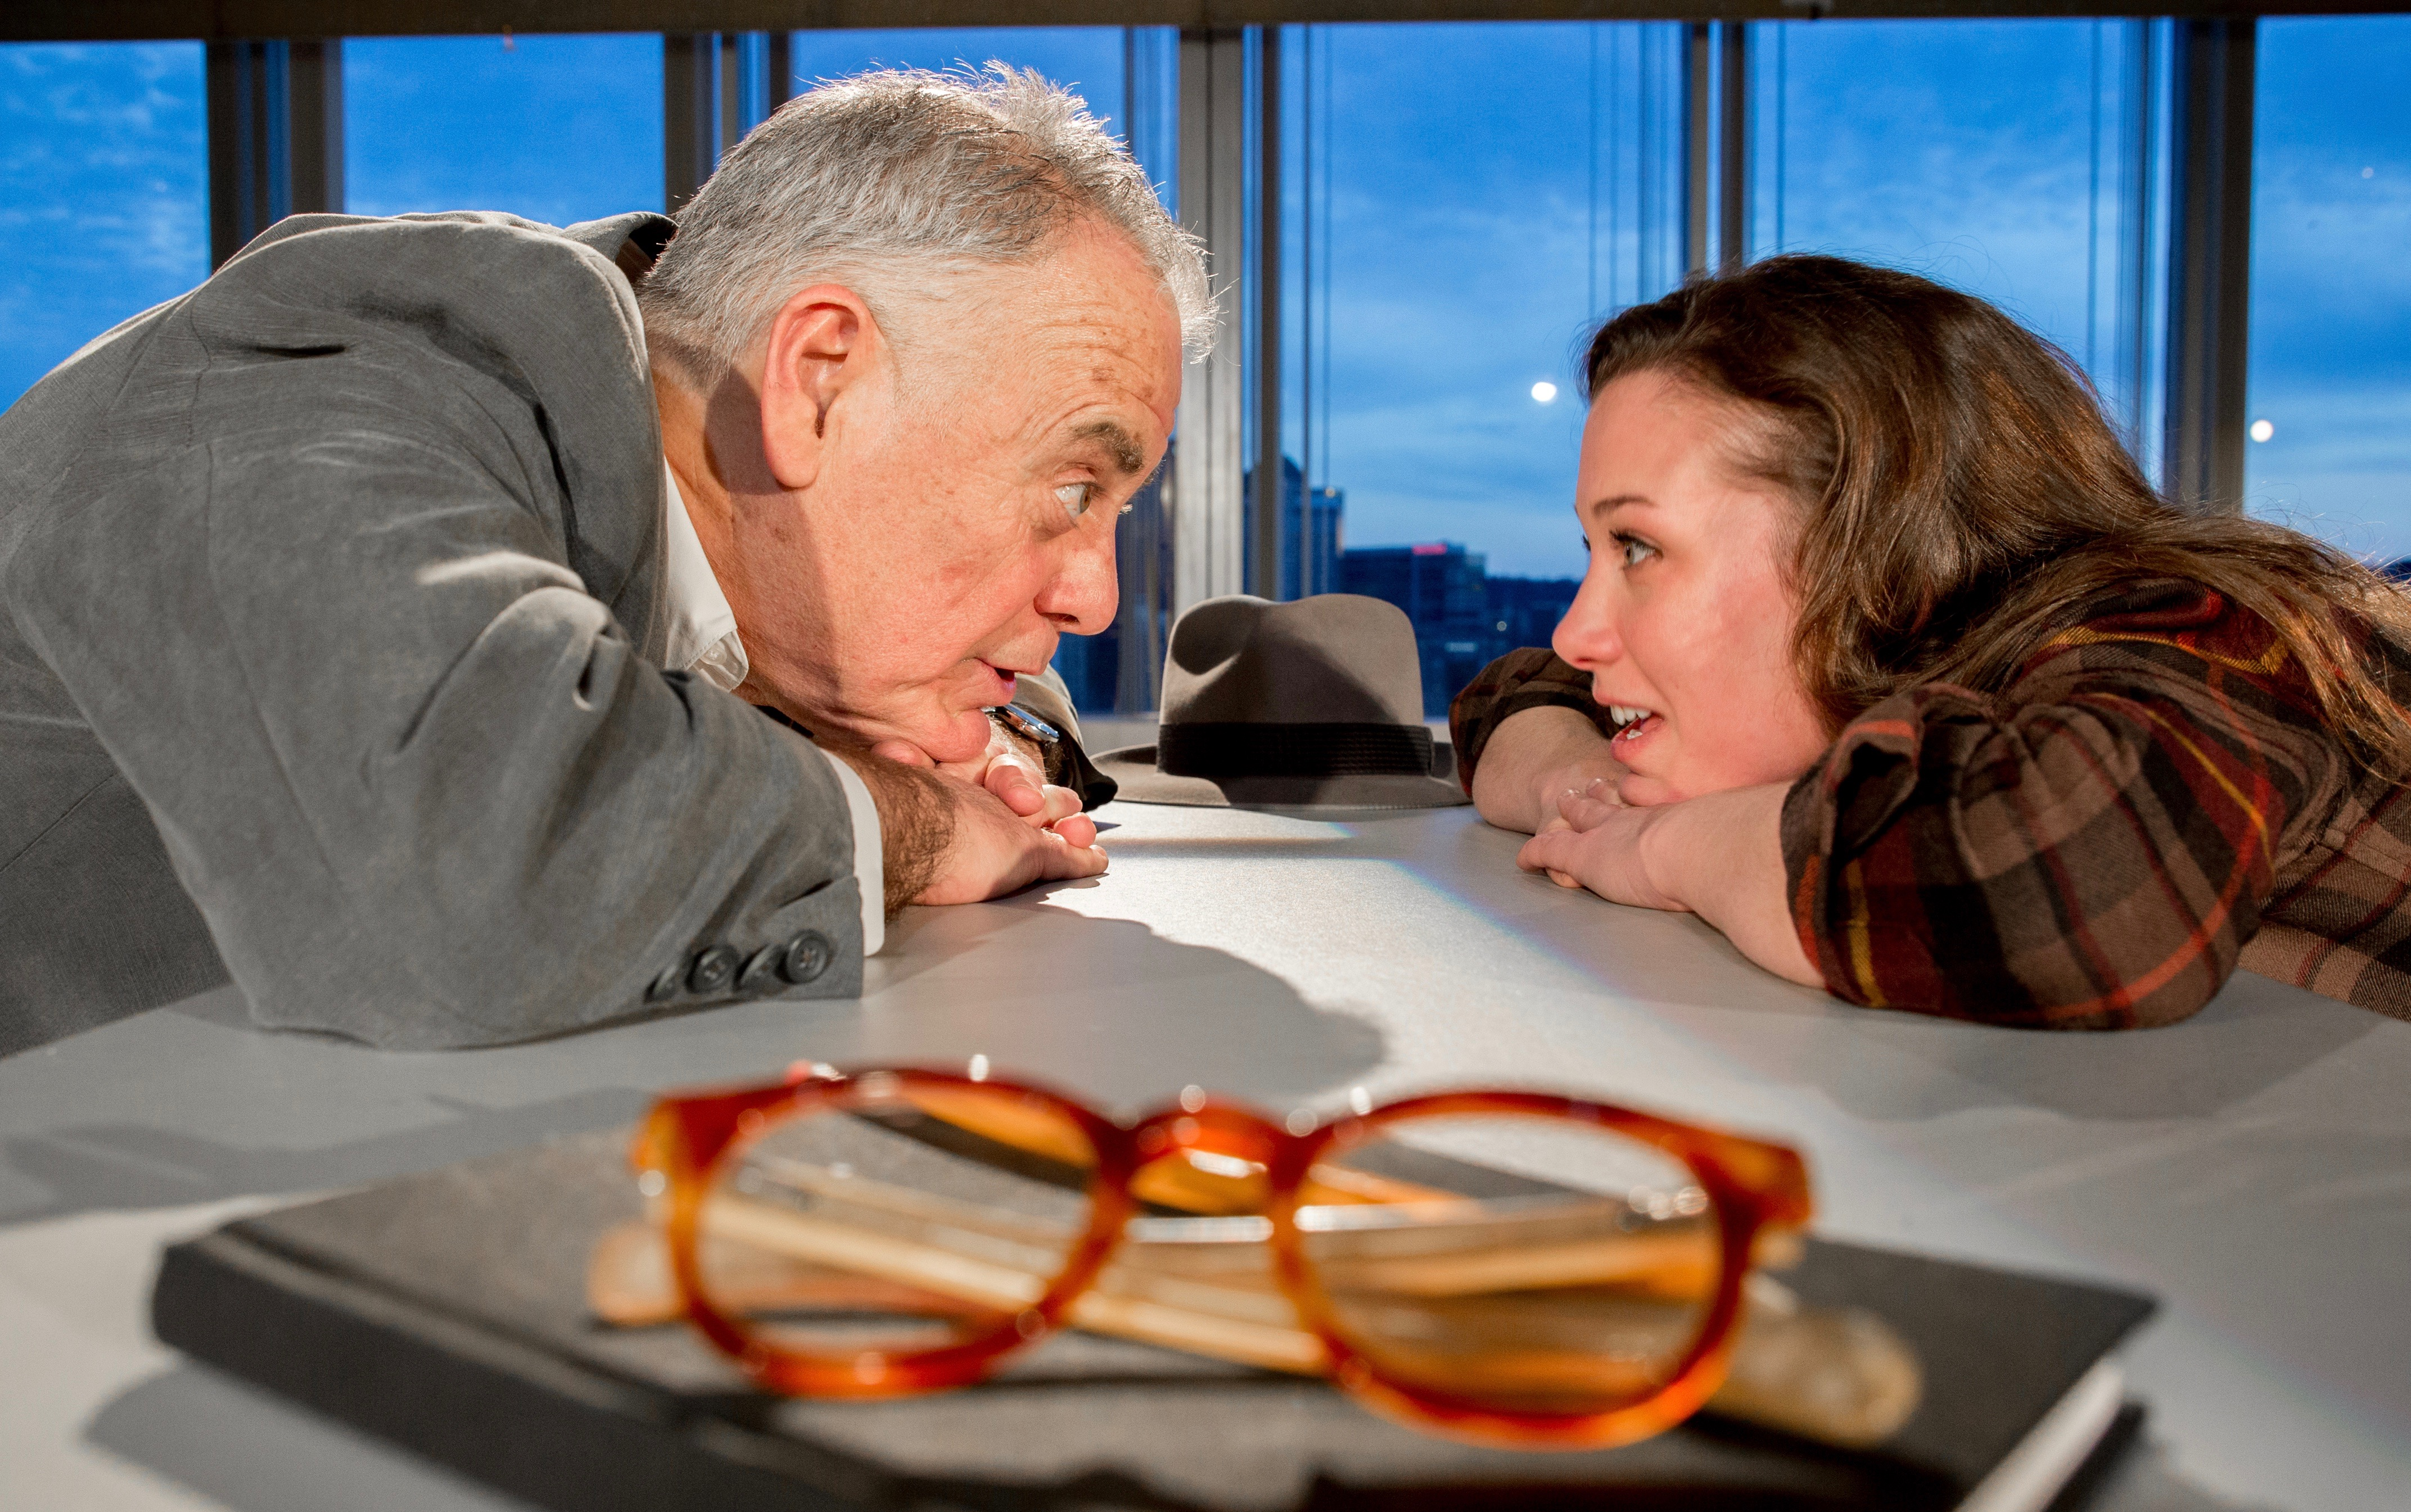 Master builder Solness (John Shepard) and Hilda (Hayley Nielsen) see eye-to-eye, but not clearly: Solness isn't wearing his reality specs.